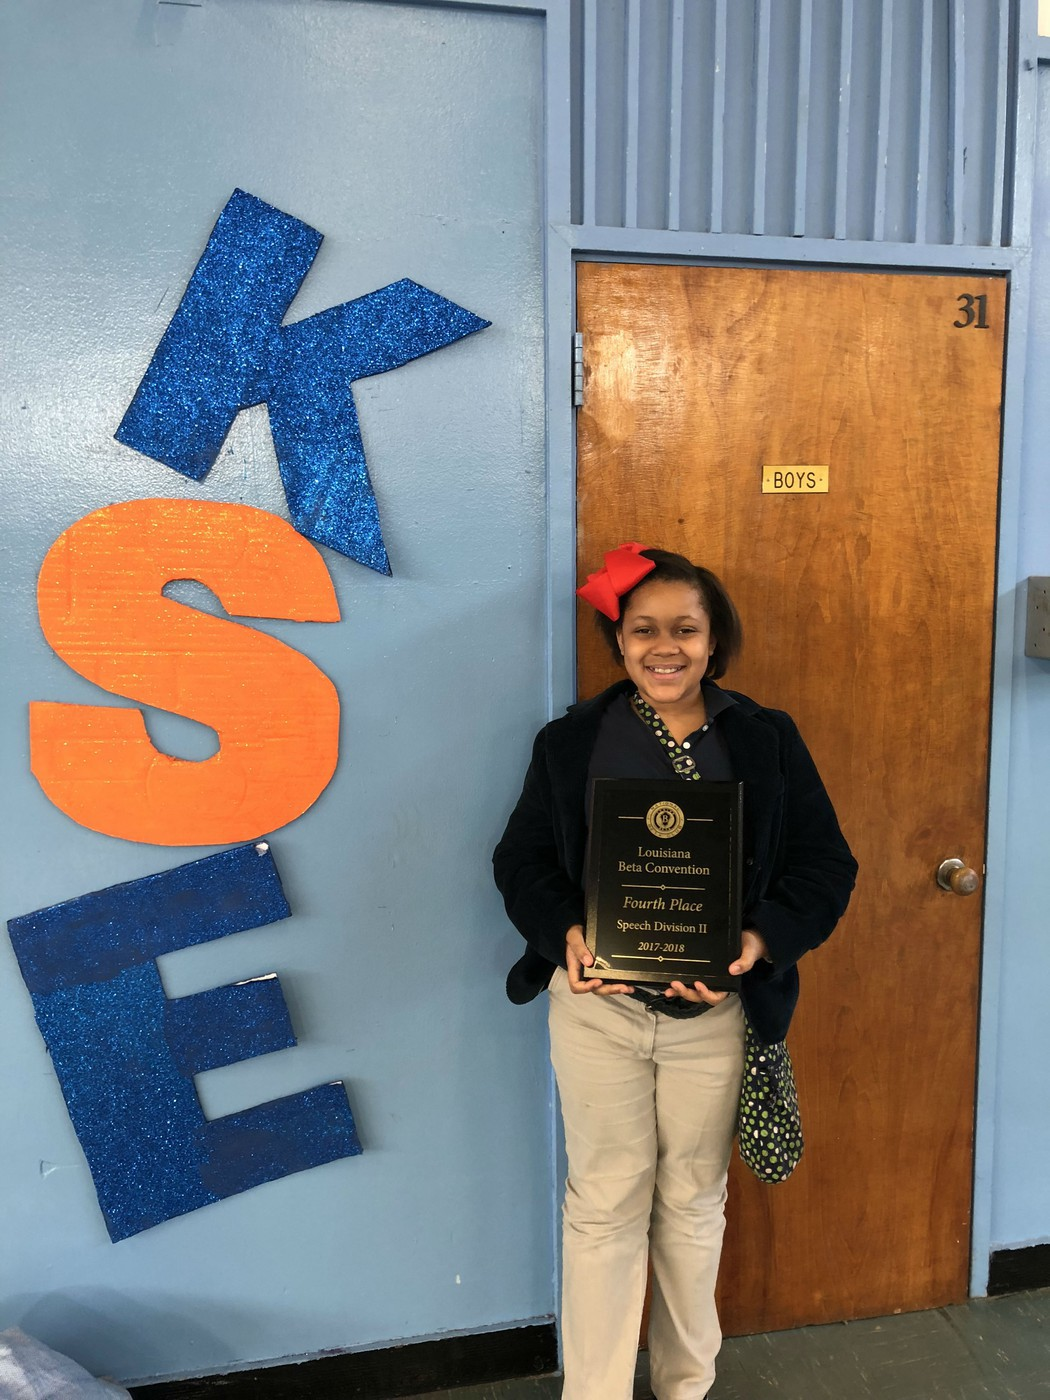 Congratulations to Taylor Robinson who placed 4th in Speech Division II at Jr. Beta State Competition that was held on 2/21 – 2/23.